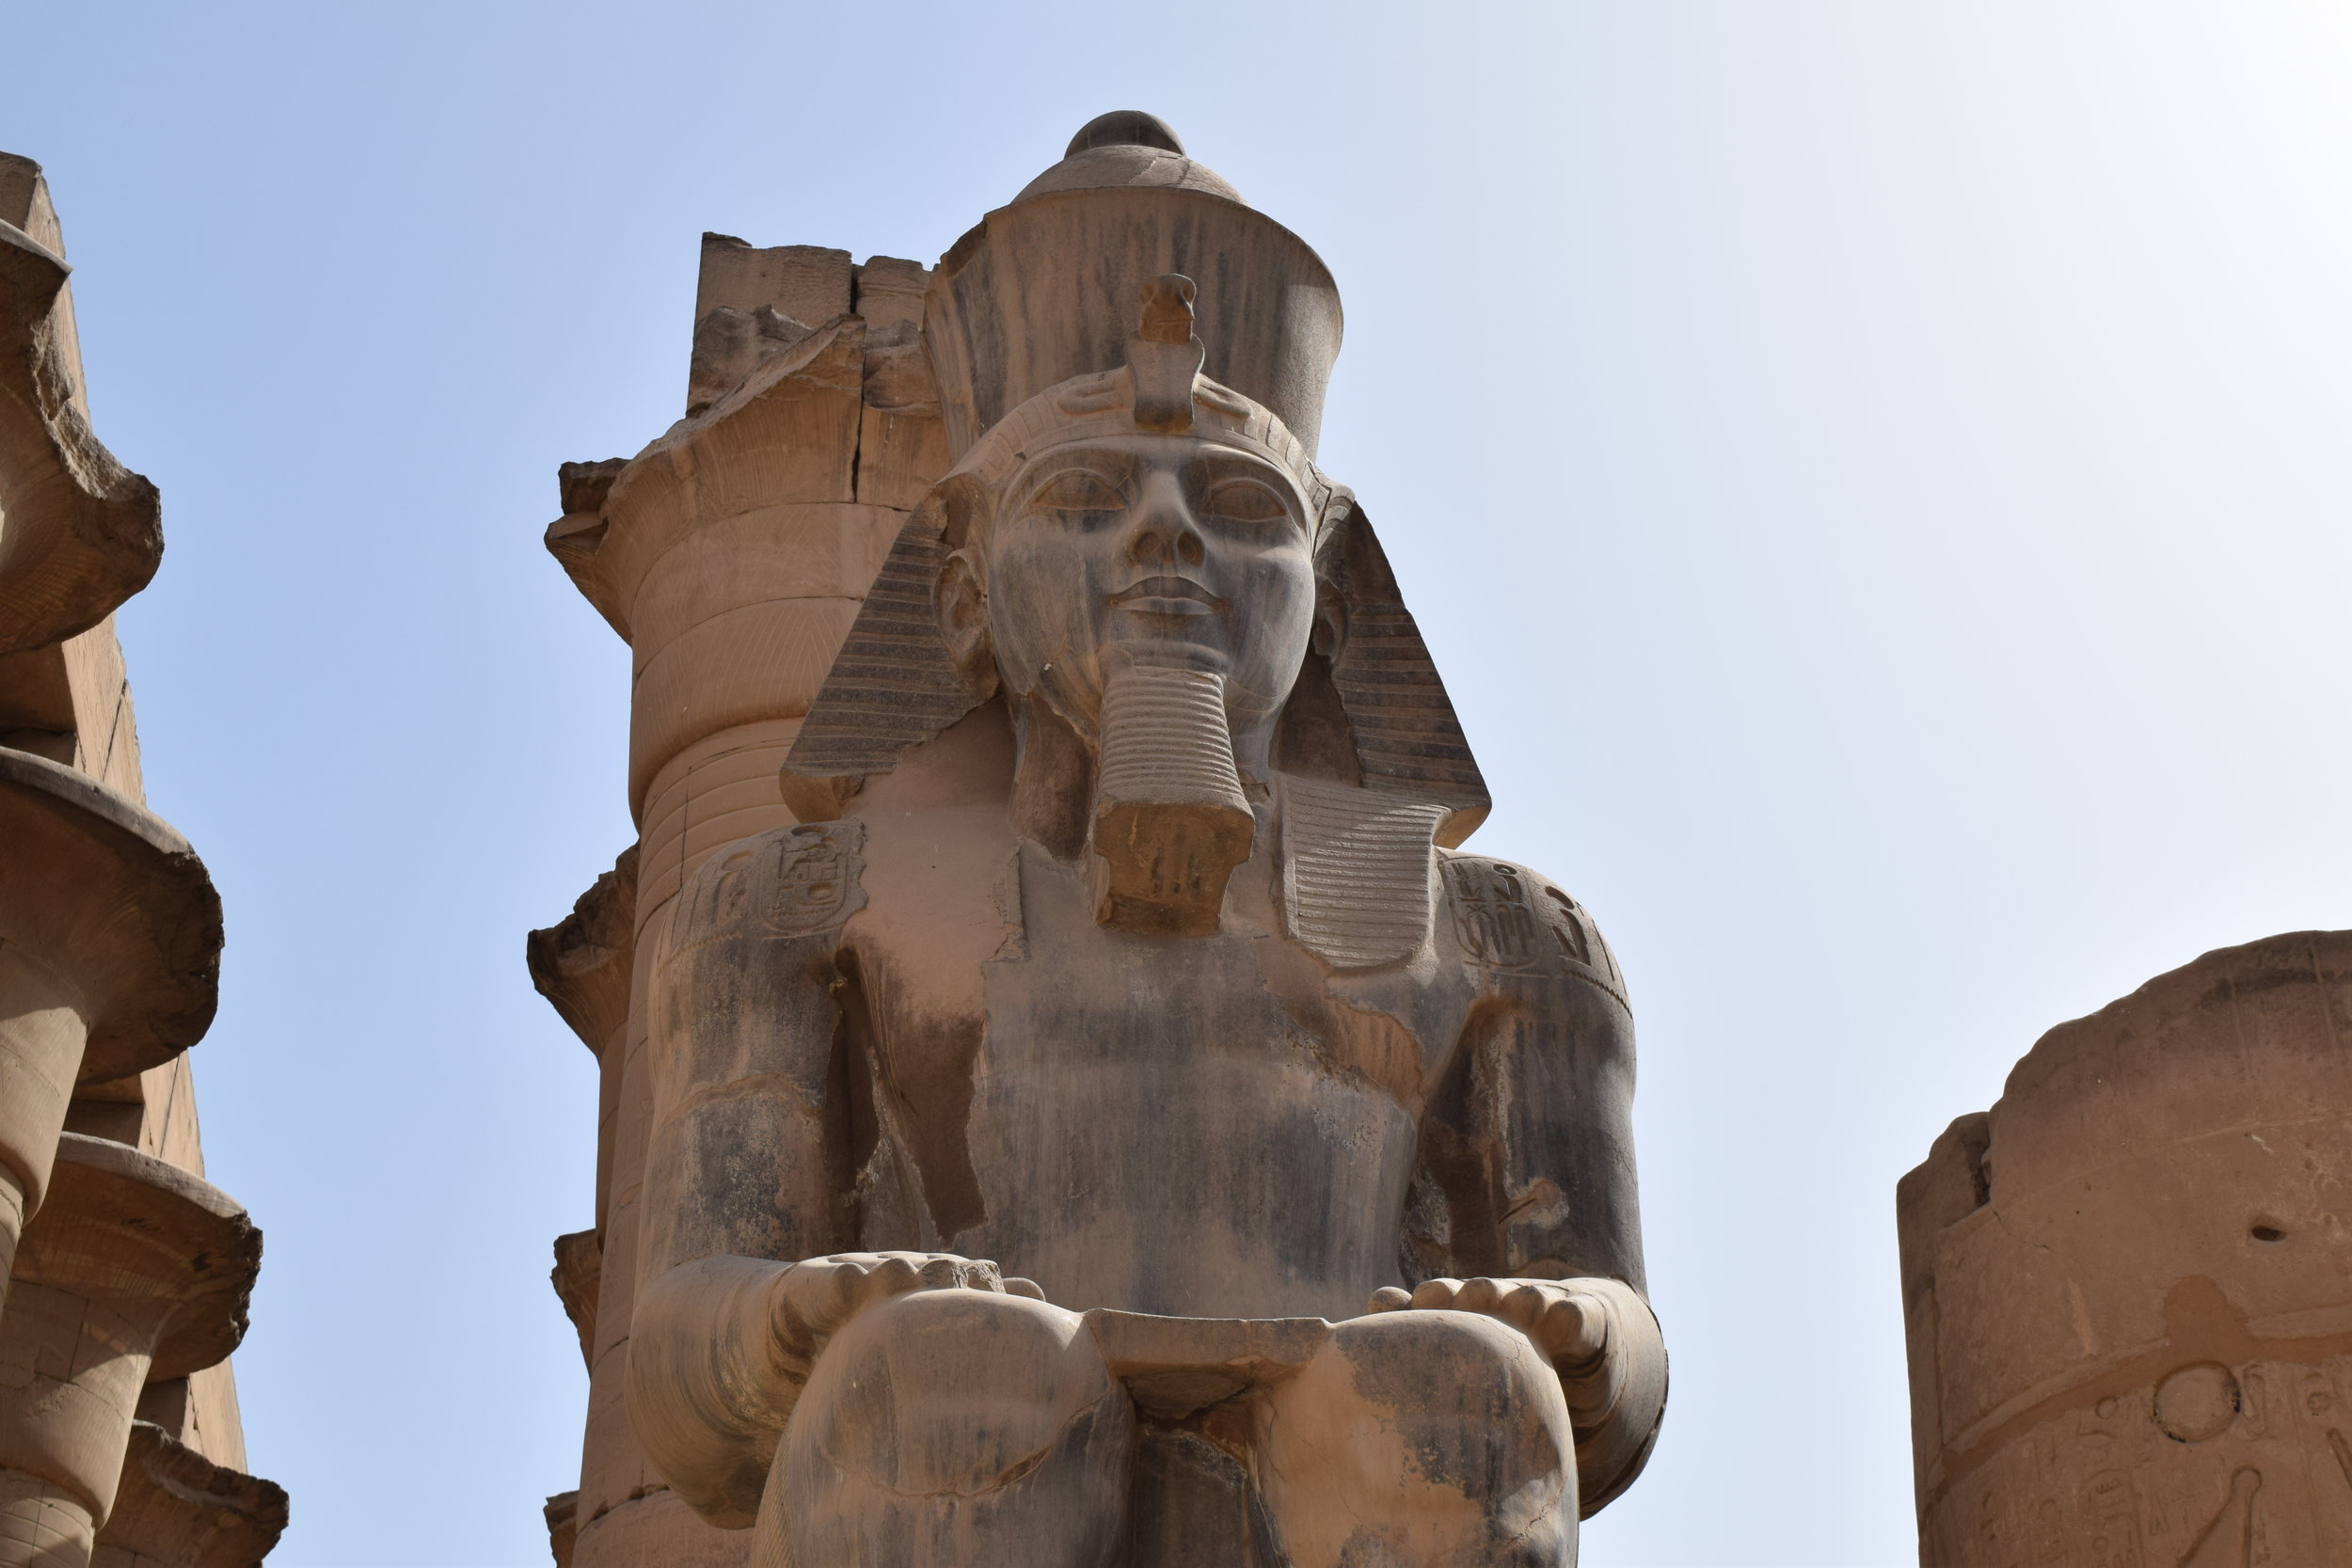 Statue of the Pharaoh